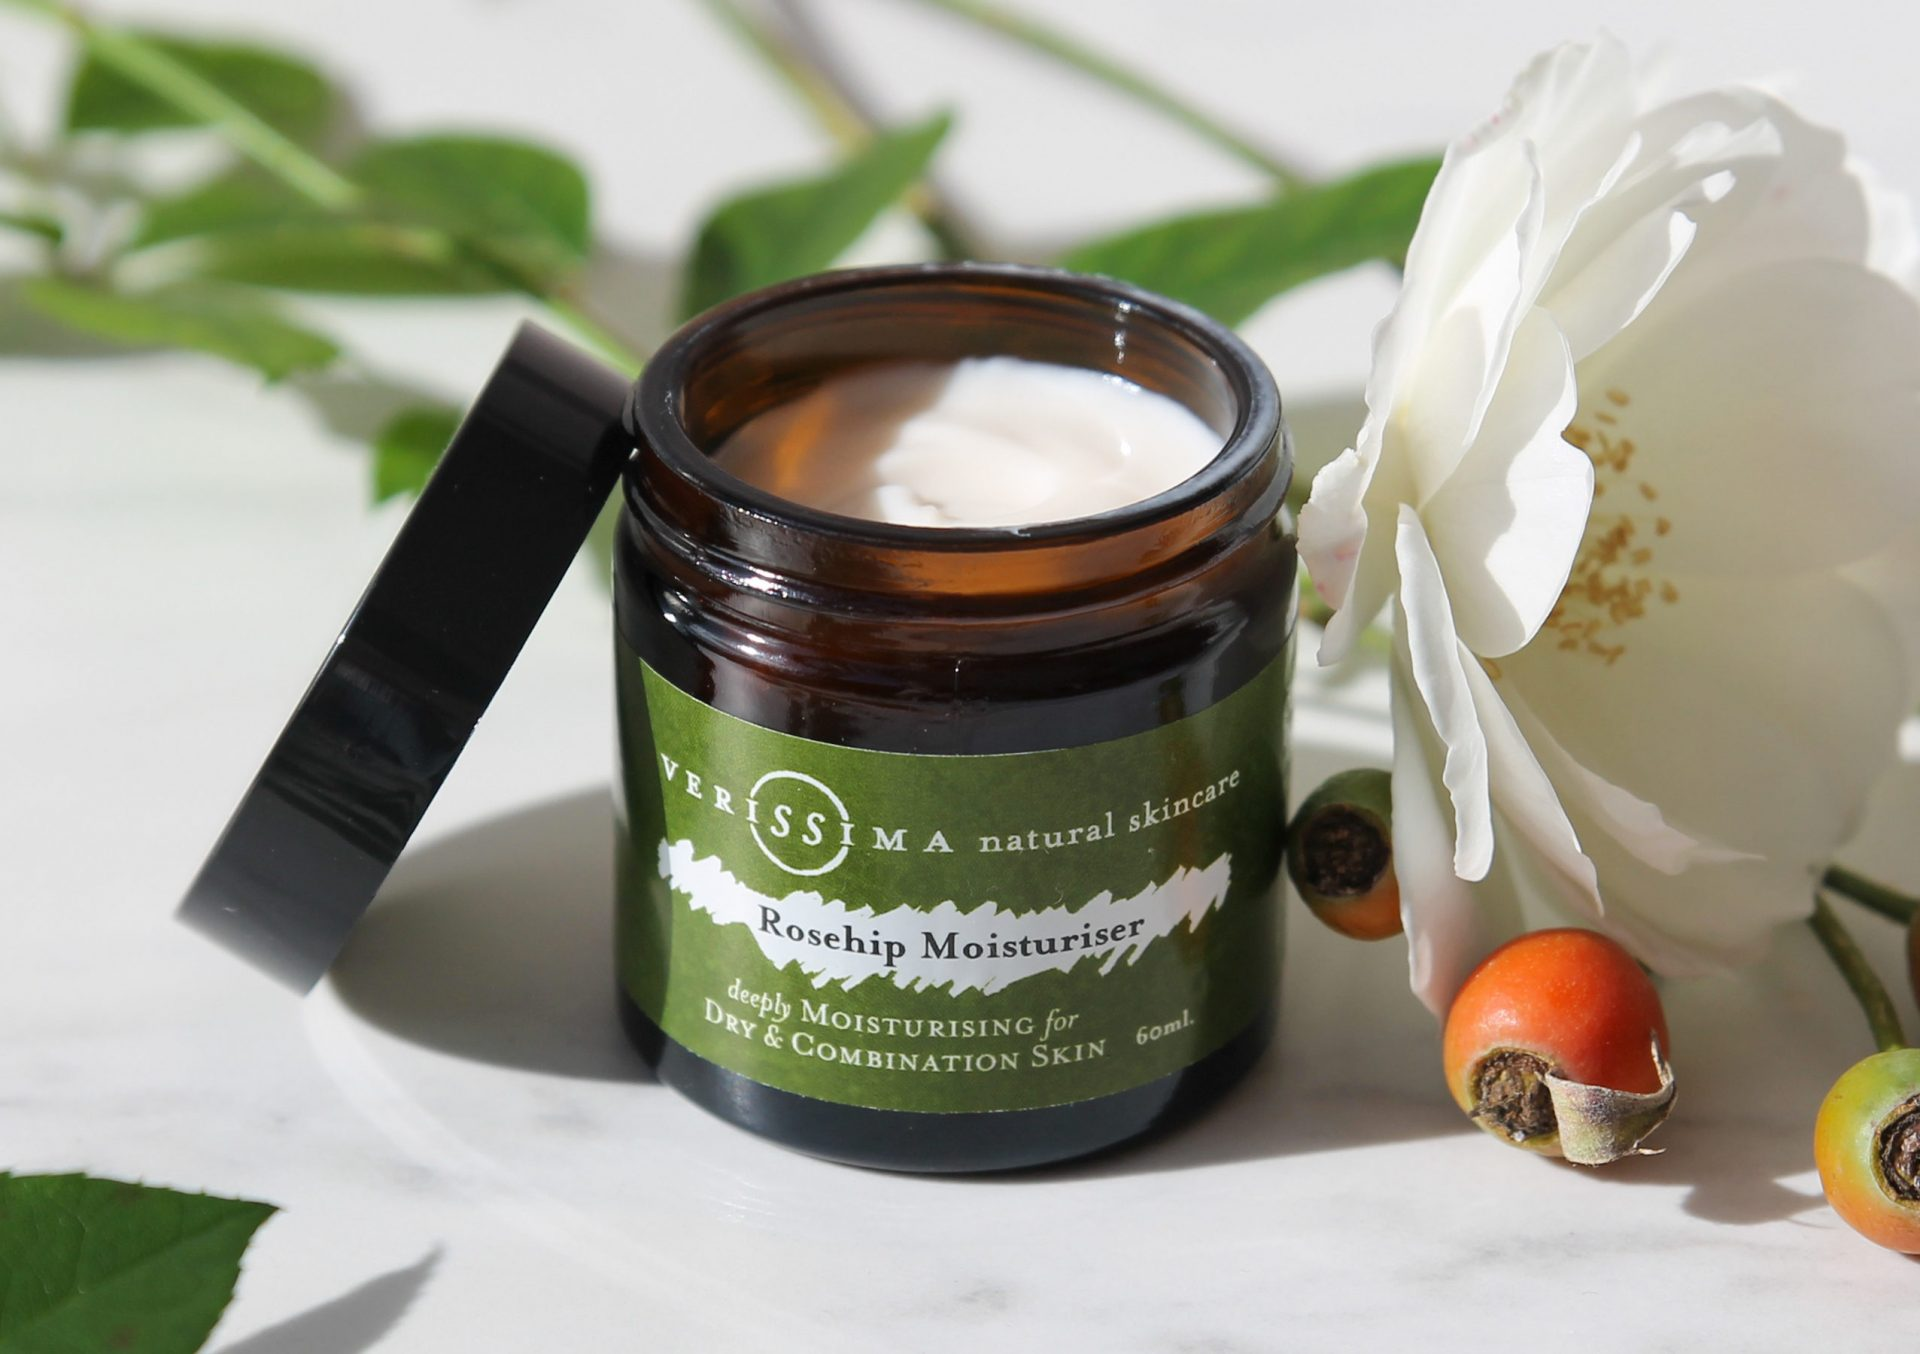 Rosehip Moisturiser Open | Verissima Natural Skin Care